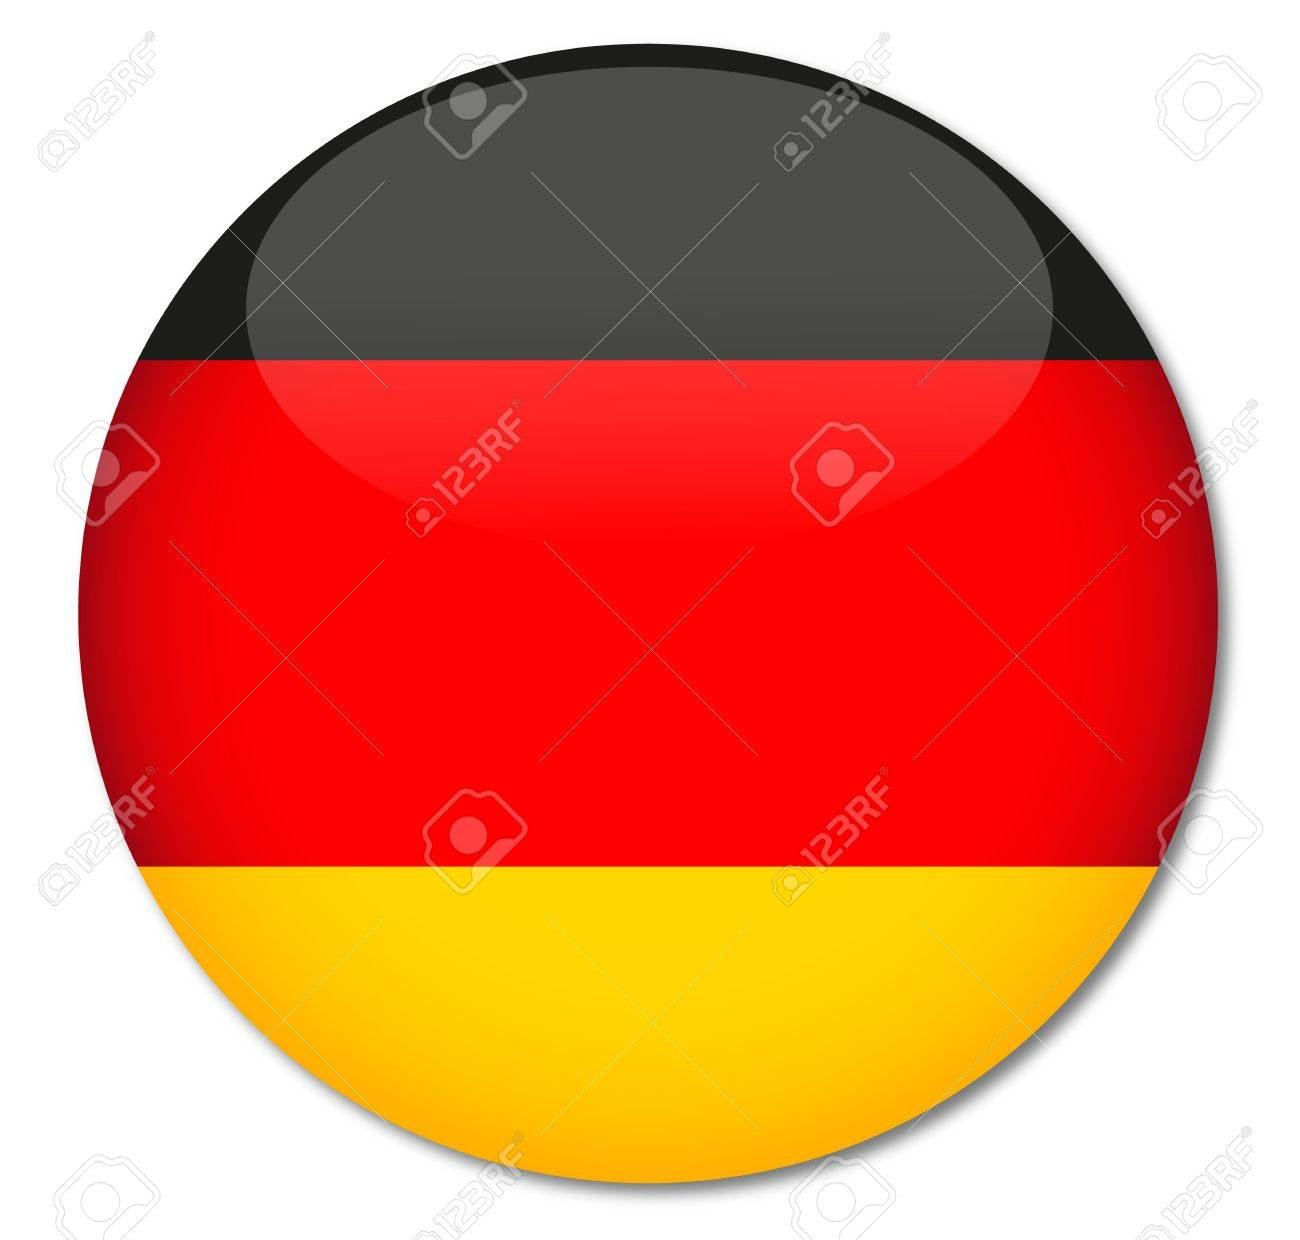 German Flag Glossy Button Stock Vector - 17211998